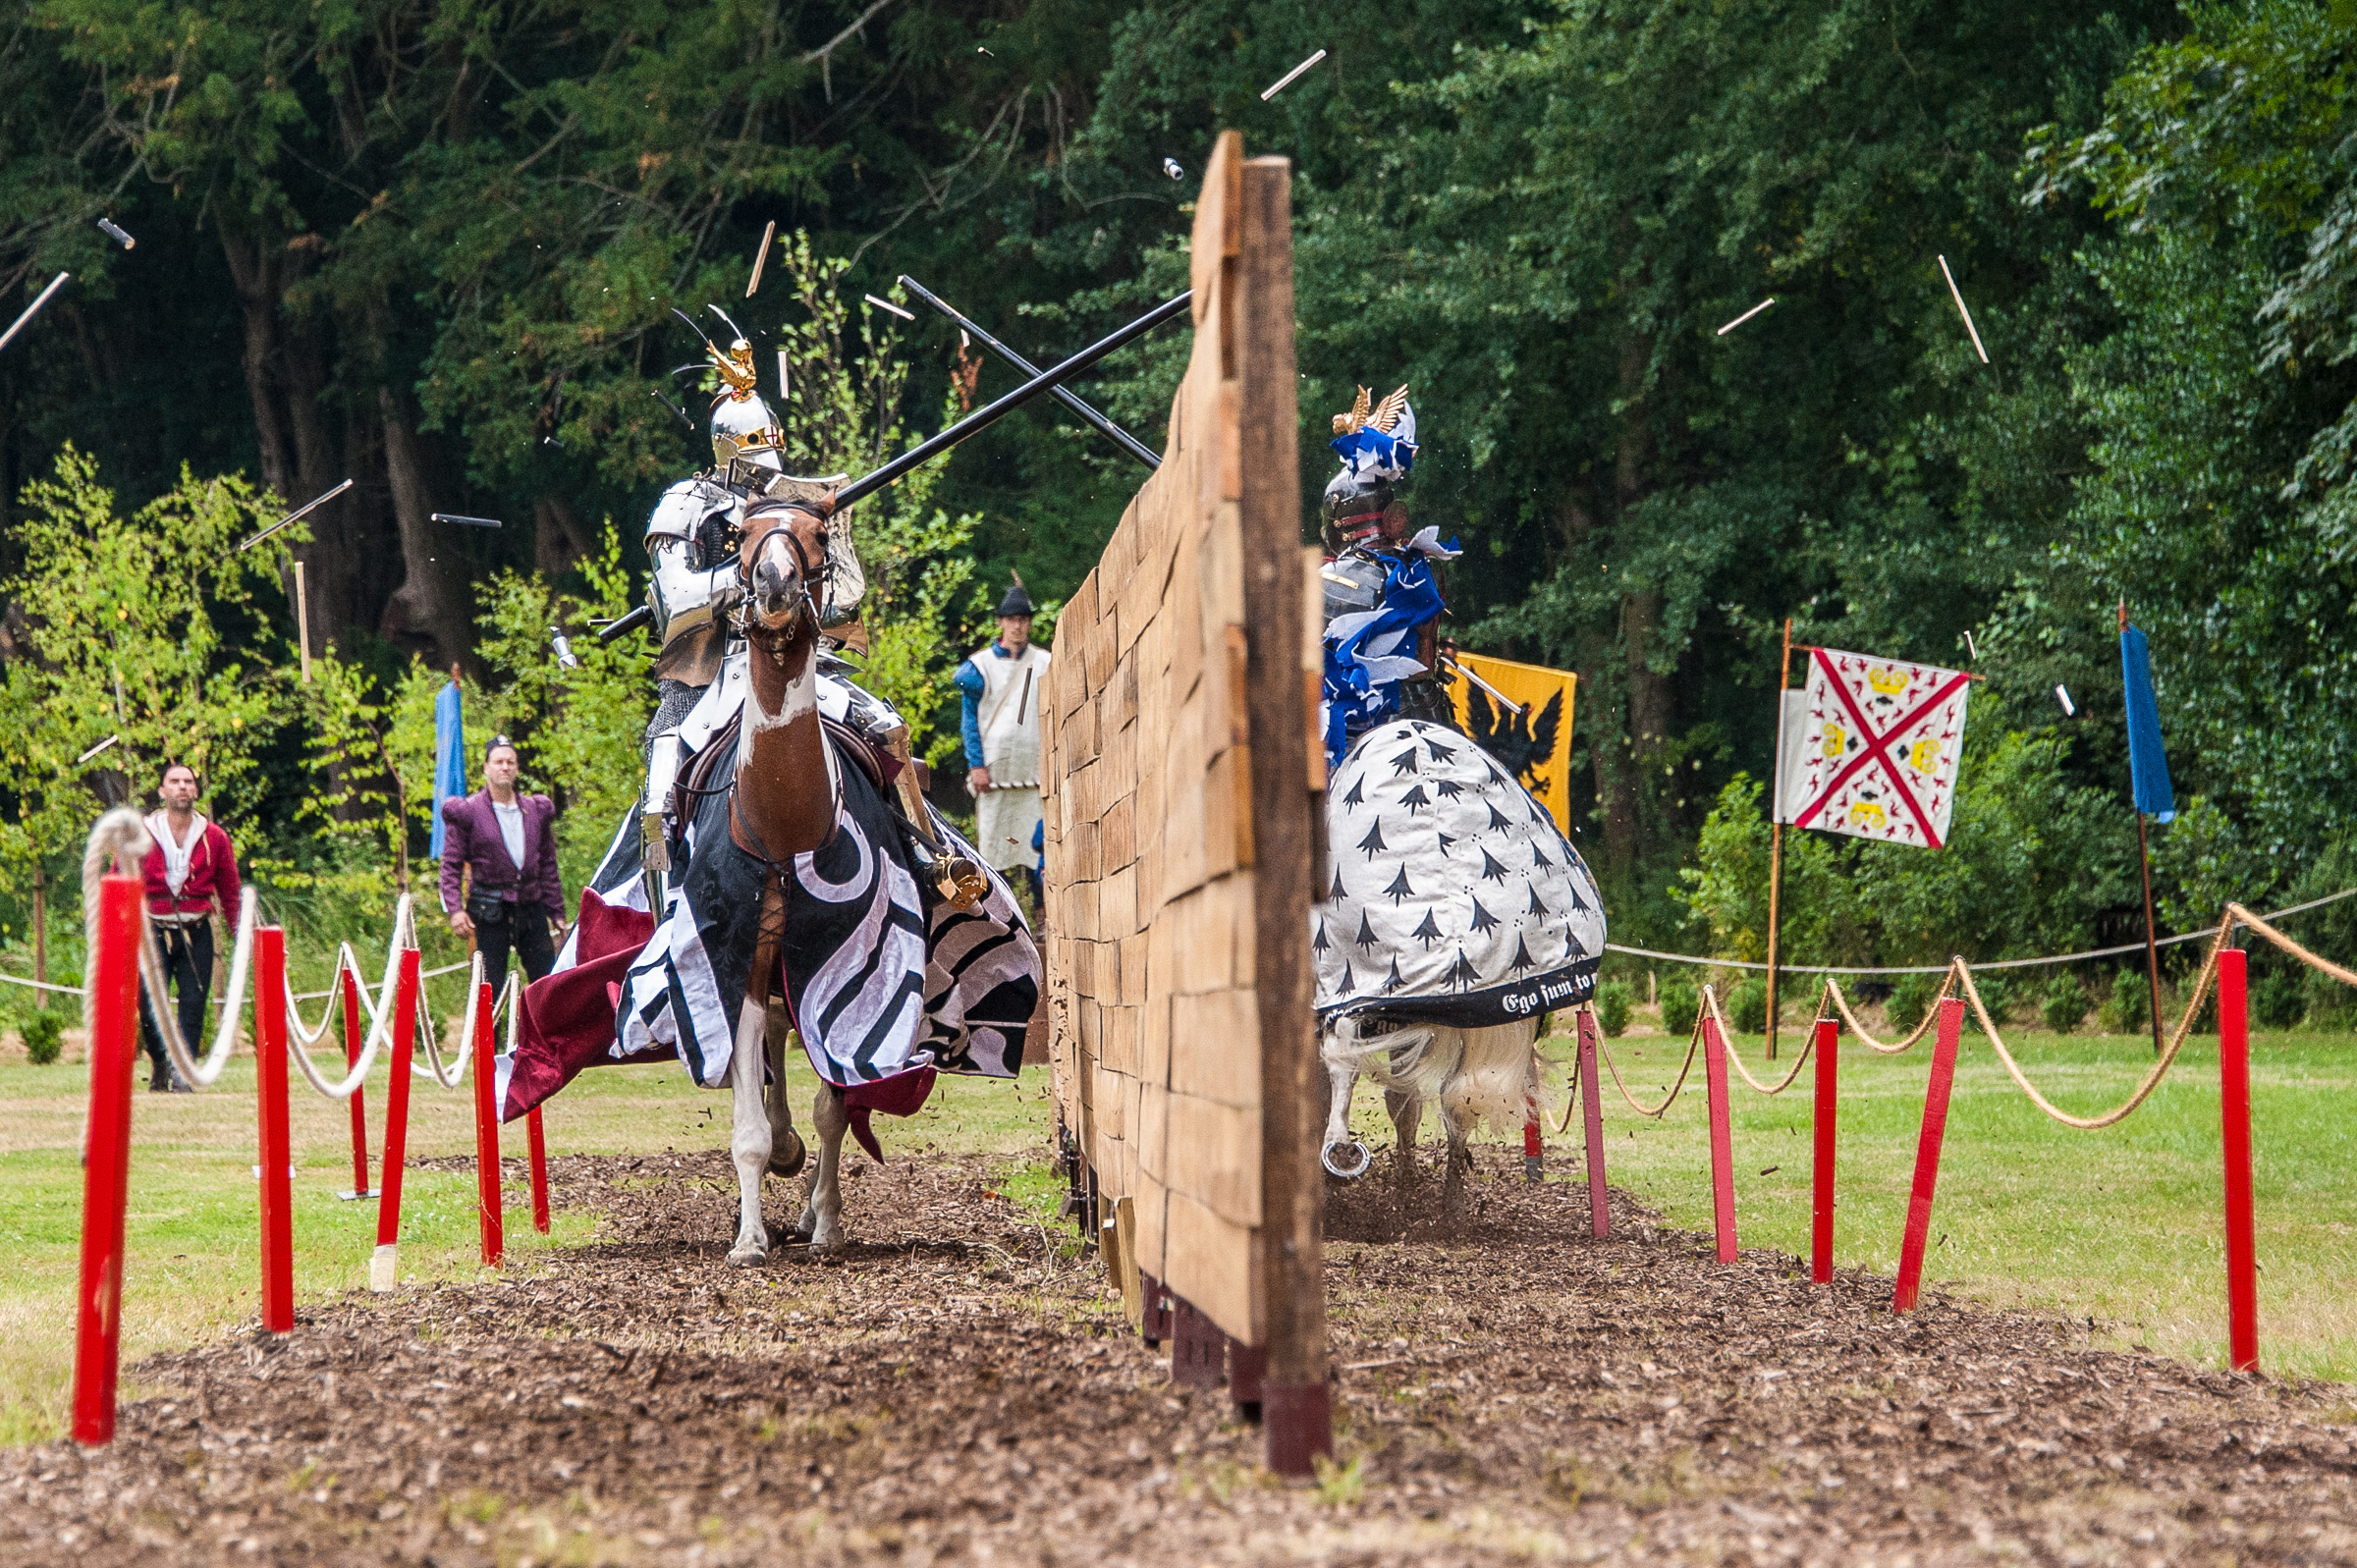 Tuesday 23rd July 2013 Joust Week at Arundel Castle, Arundel, West Sussex, UK